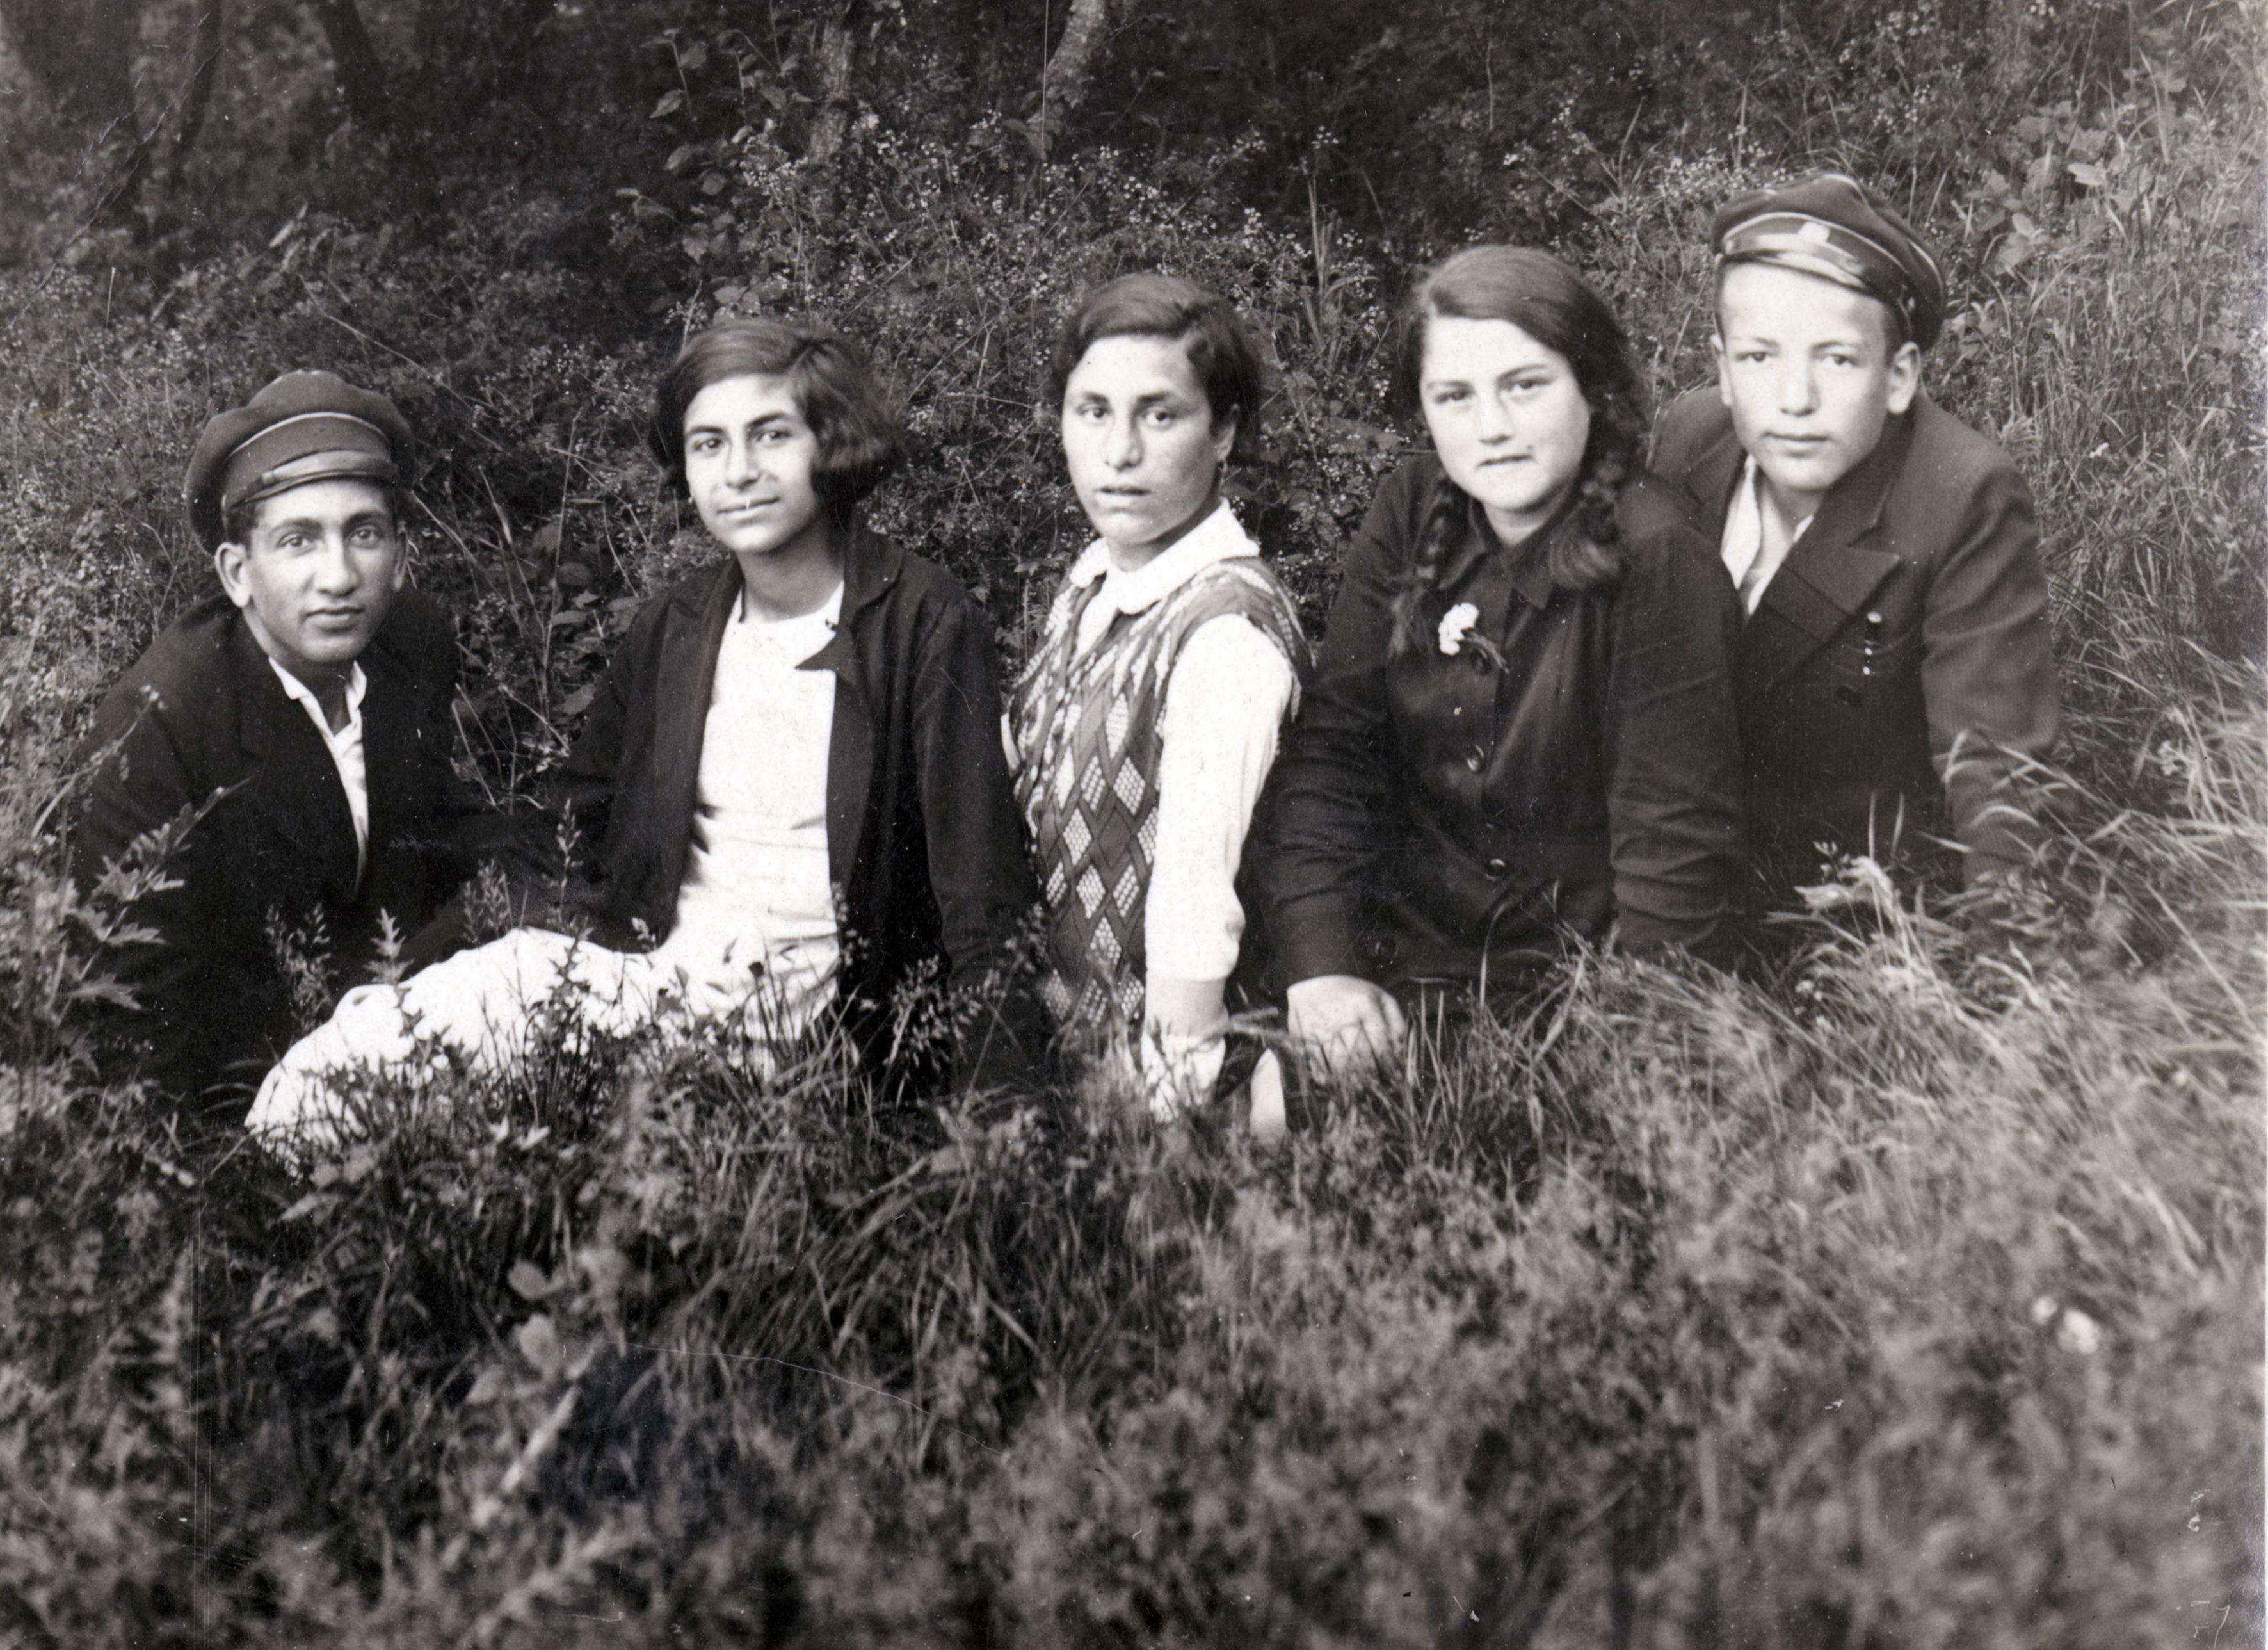 Matilda Israel with her friends